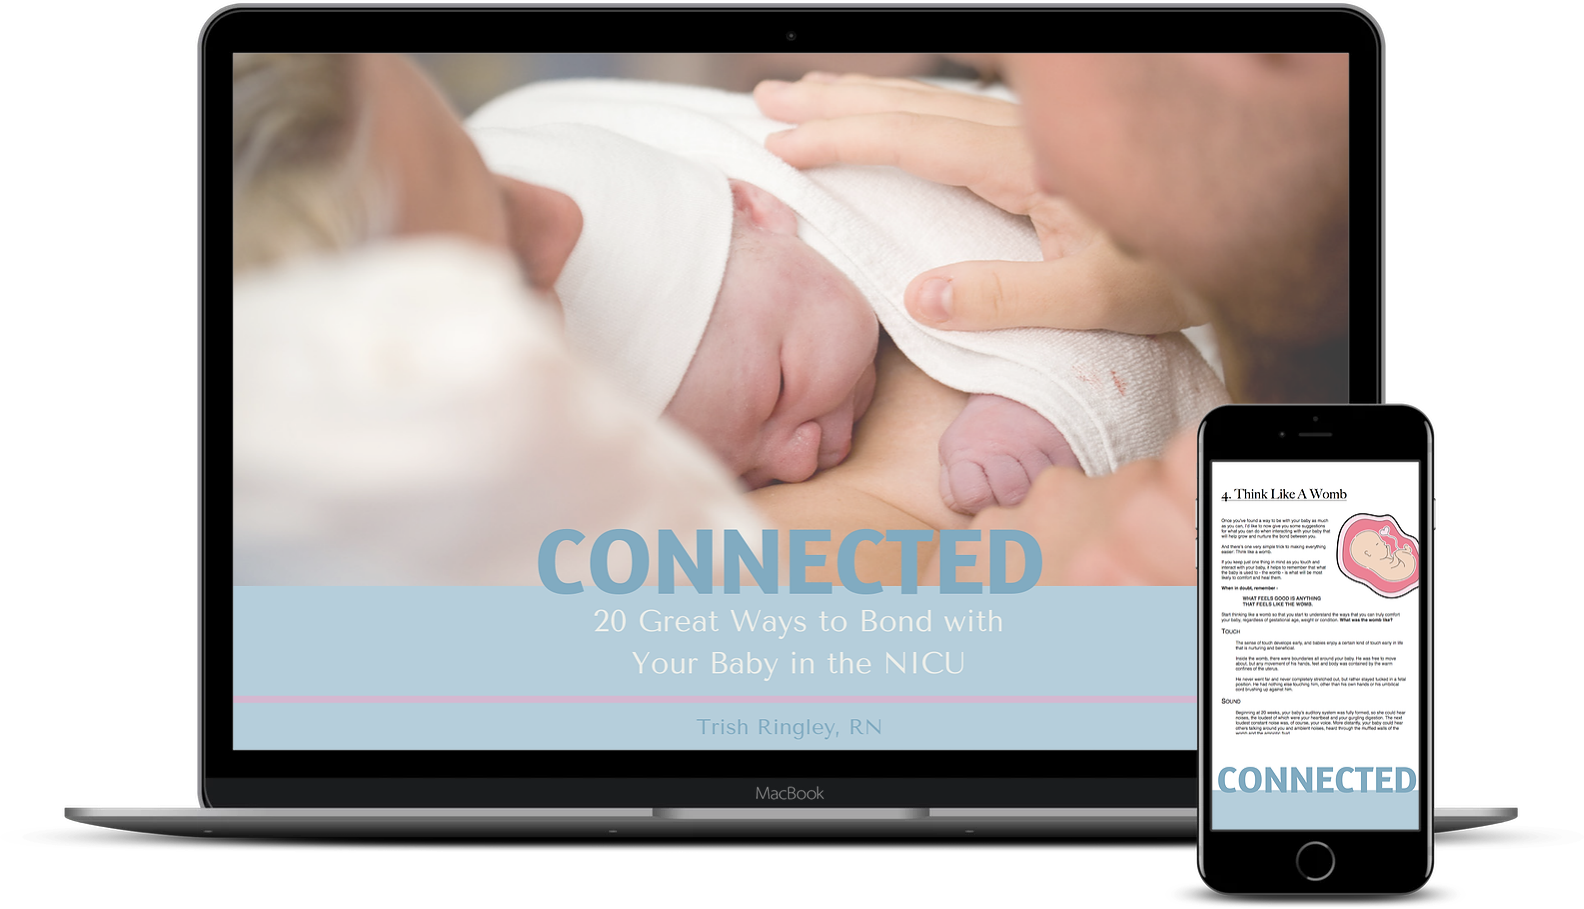 nicu preemie bonding book connected 20 great ways to bond with your baby in the nicu ebook image.jpg